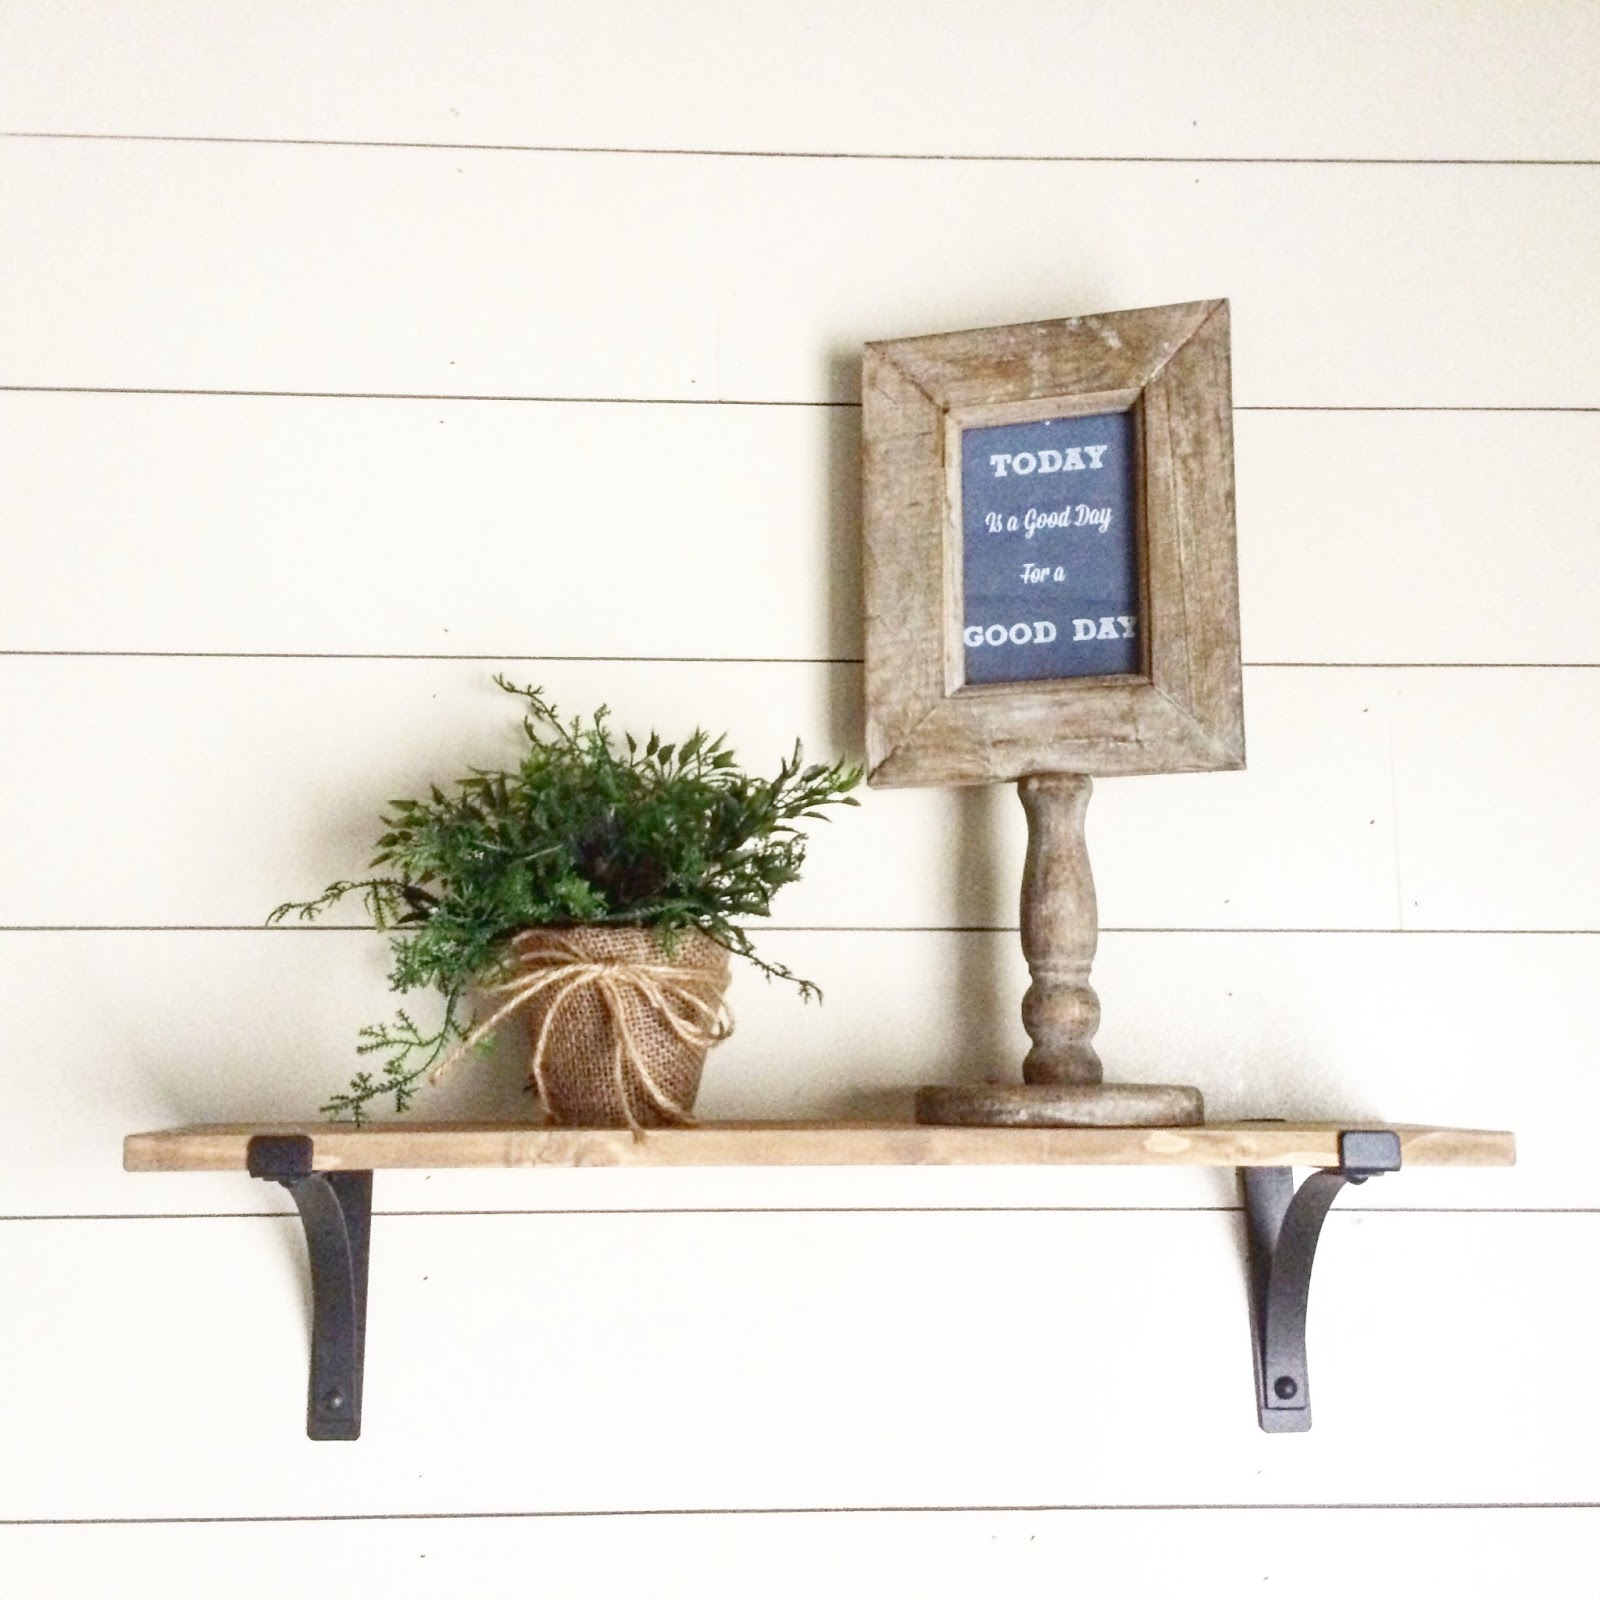 Amazing Foyer Love The Dark And White Wood Together: How To Install A Shiplap Wall + Rustic